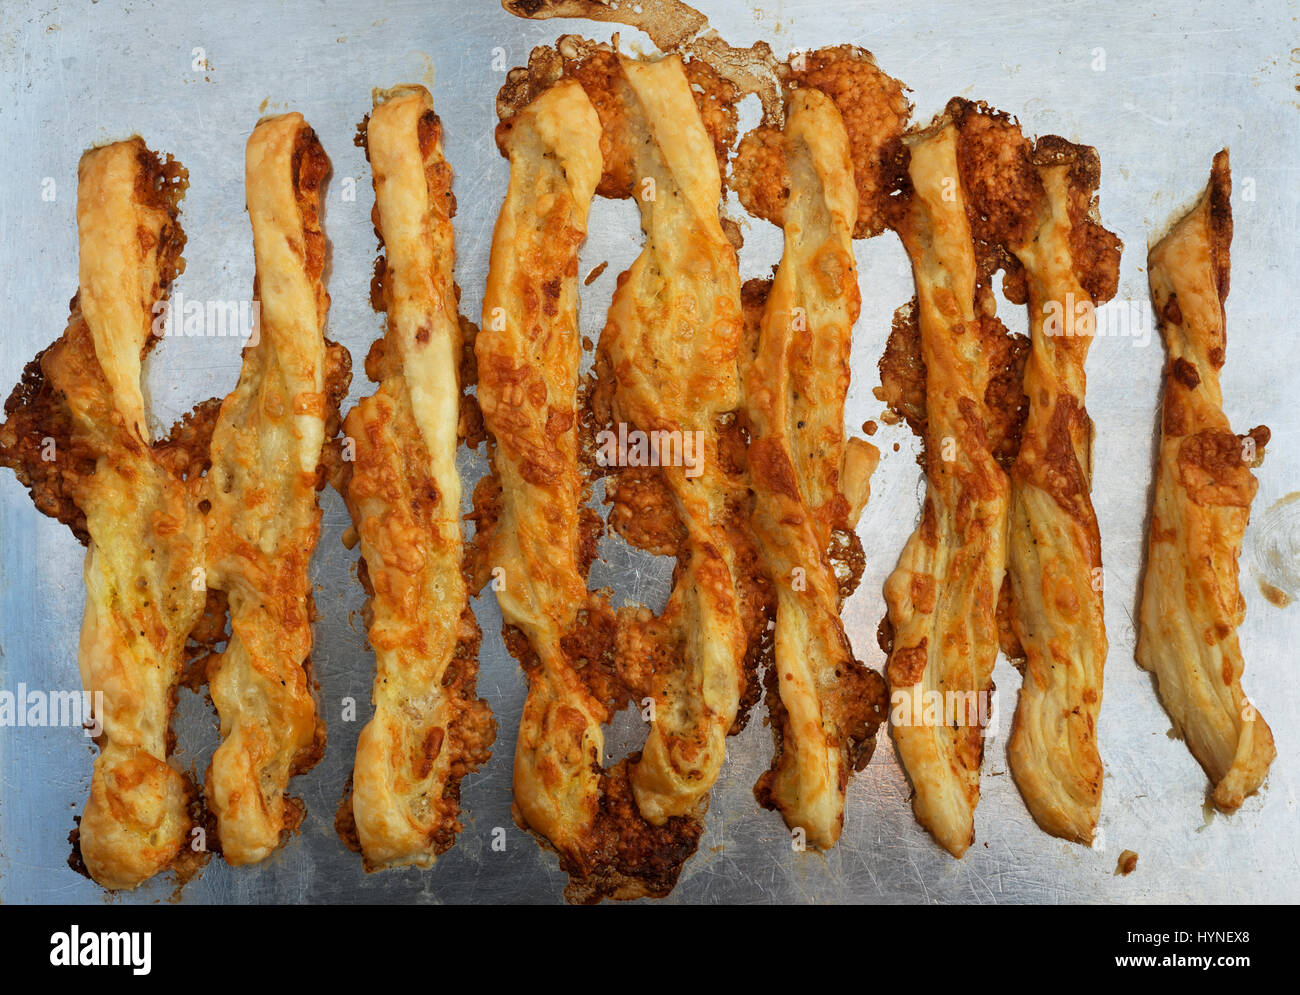 Homemade cheese straws - Stock Image